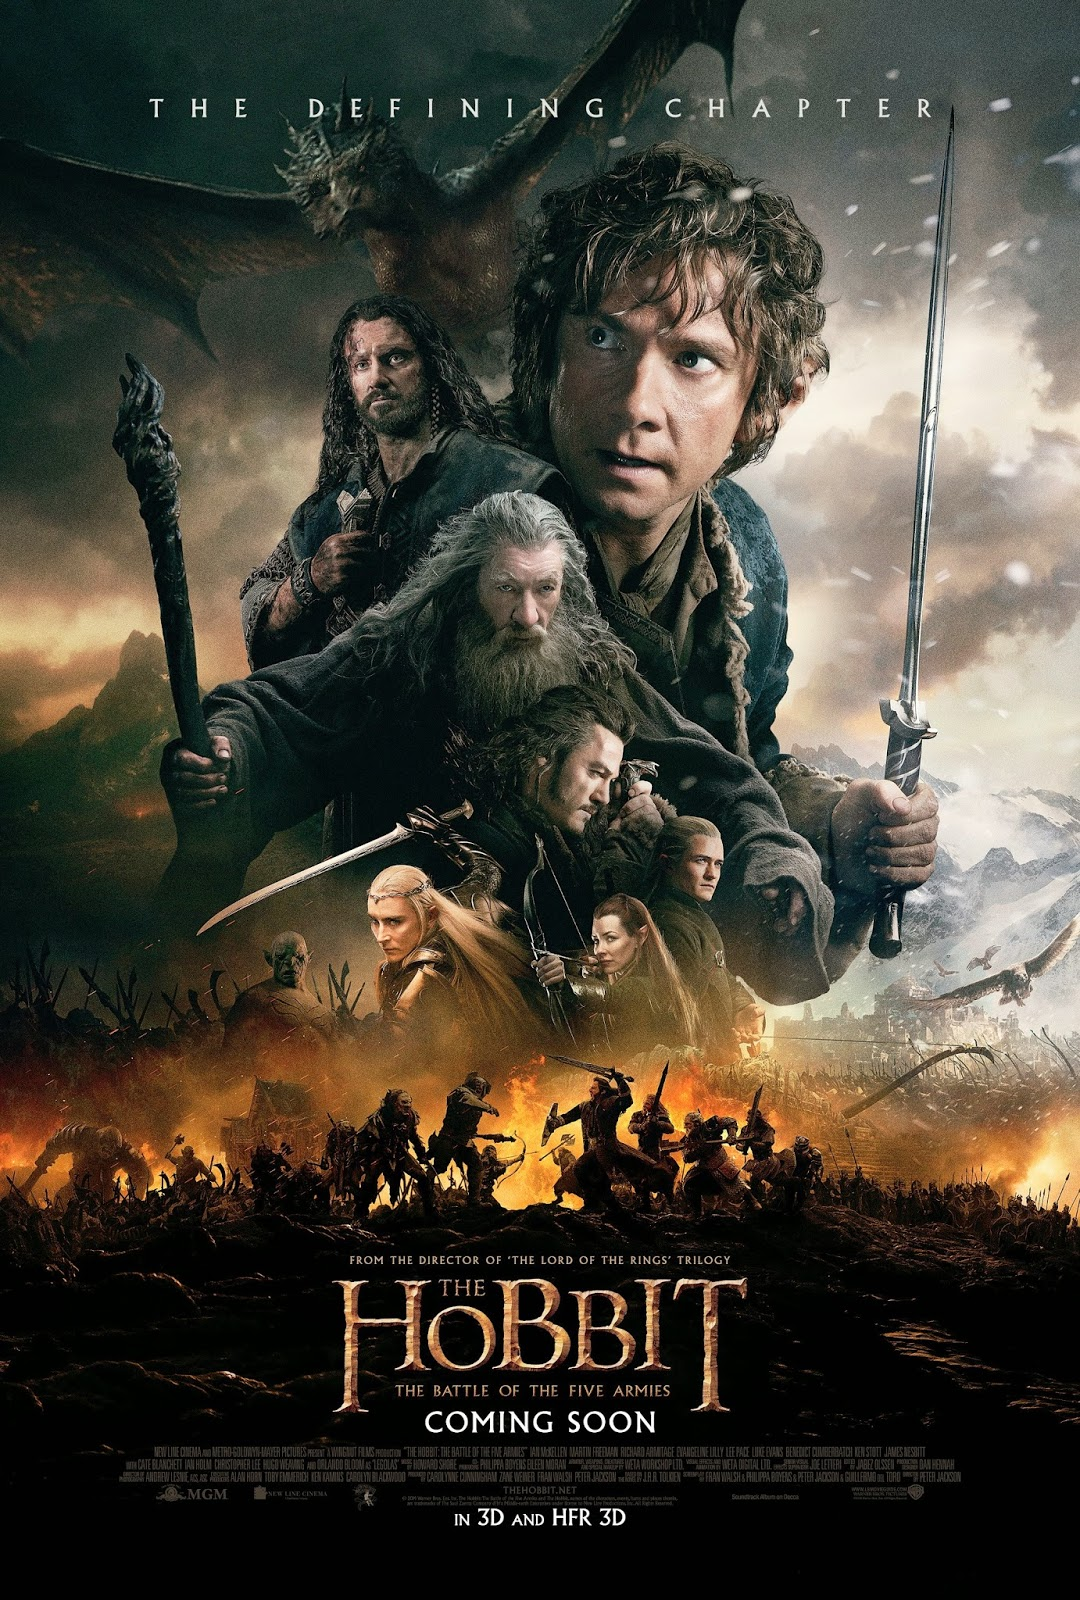 DOWNLOAD FILM : The Hobbit: The Battle of the Five Armies  (2014)